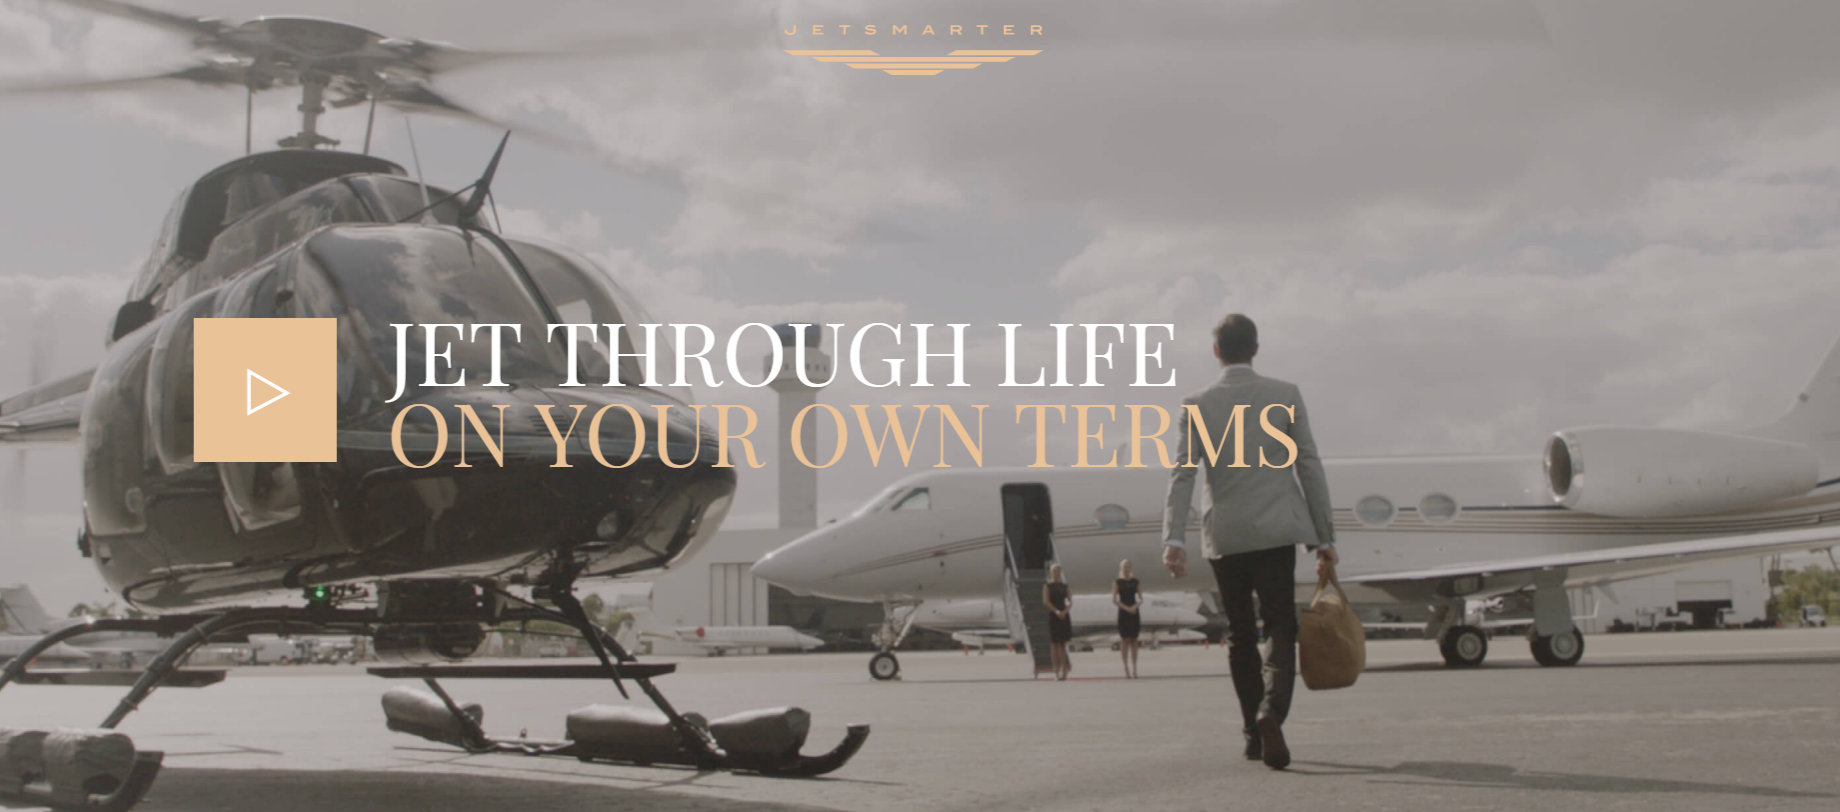 World's Largest Private Air Travel Lifestyle Community JetSmarter